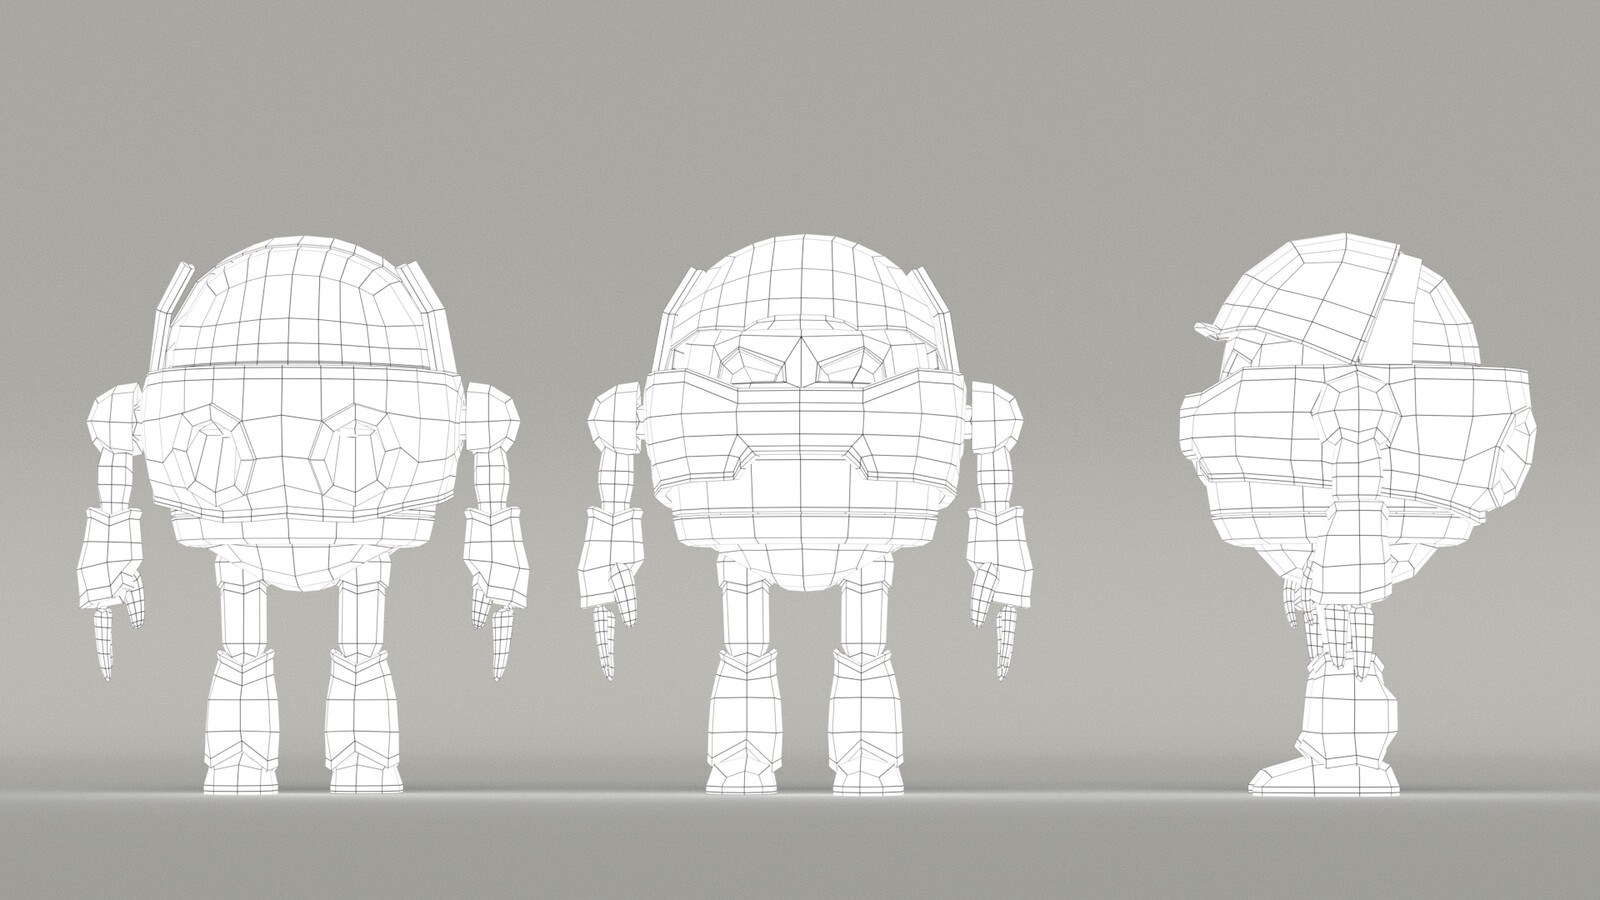 wireframe topology view Concept Cartoon Robot (Own Design)